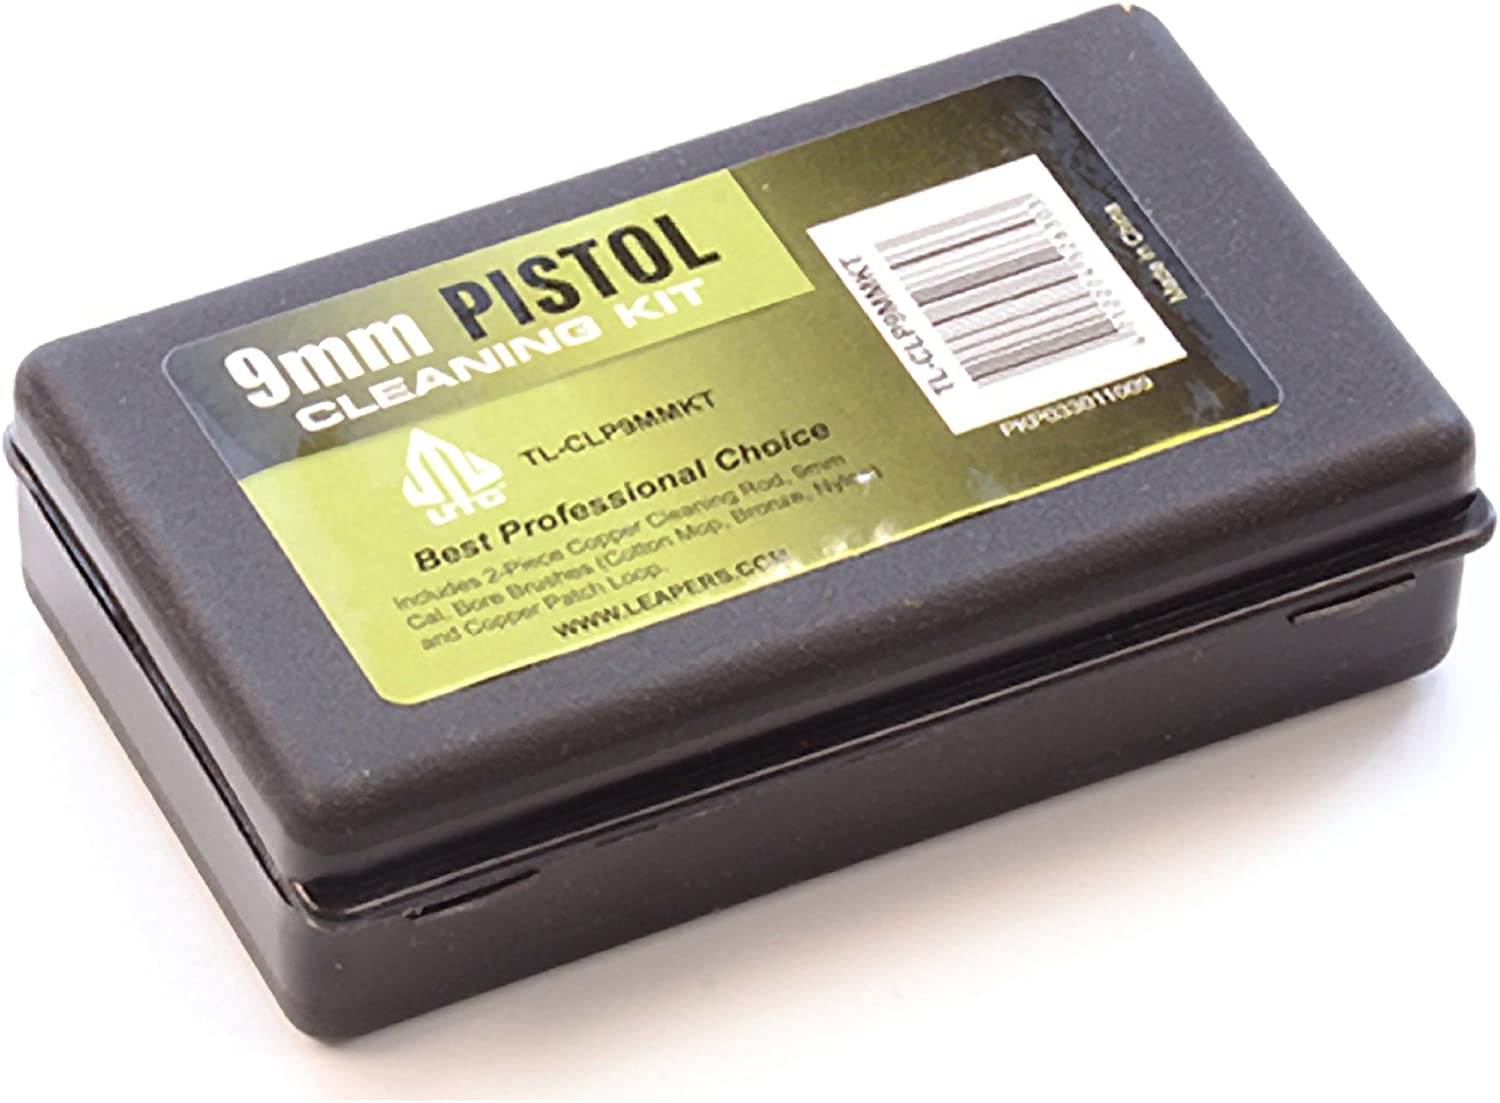 UTG 9MM Pistol Cleaning Kit : Hunting Cleaning And Maintenance Products : Sports & Outdoors